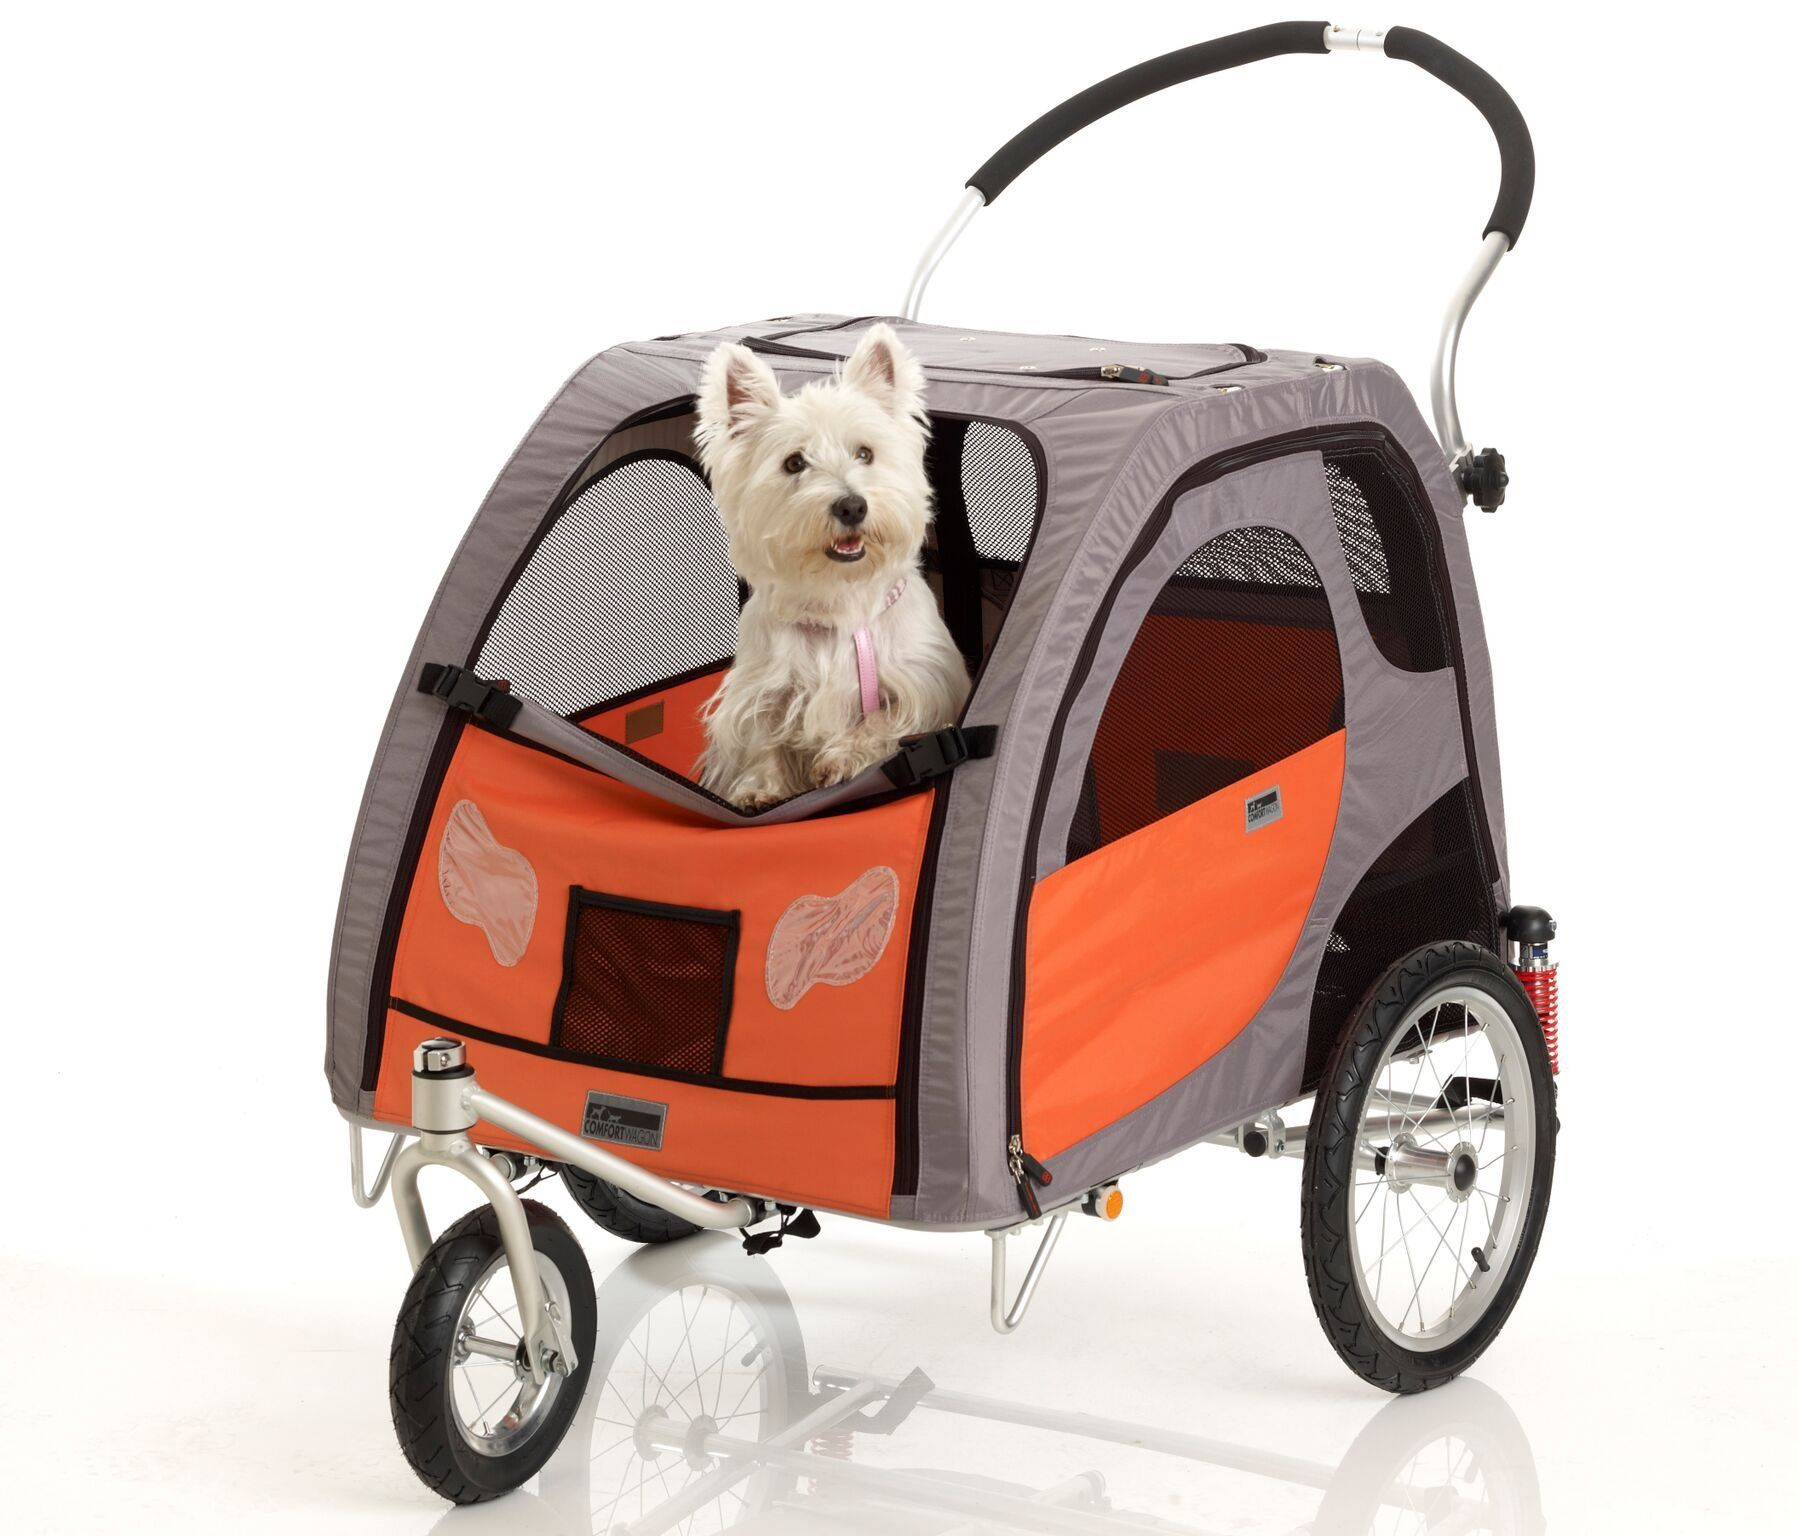 Petego Stroller Conversion Kit for Comfort Wagon Pet